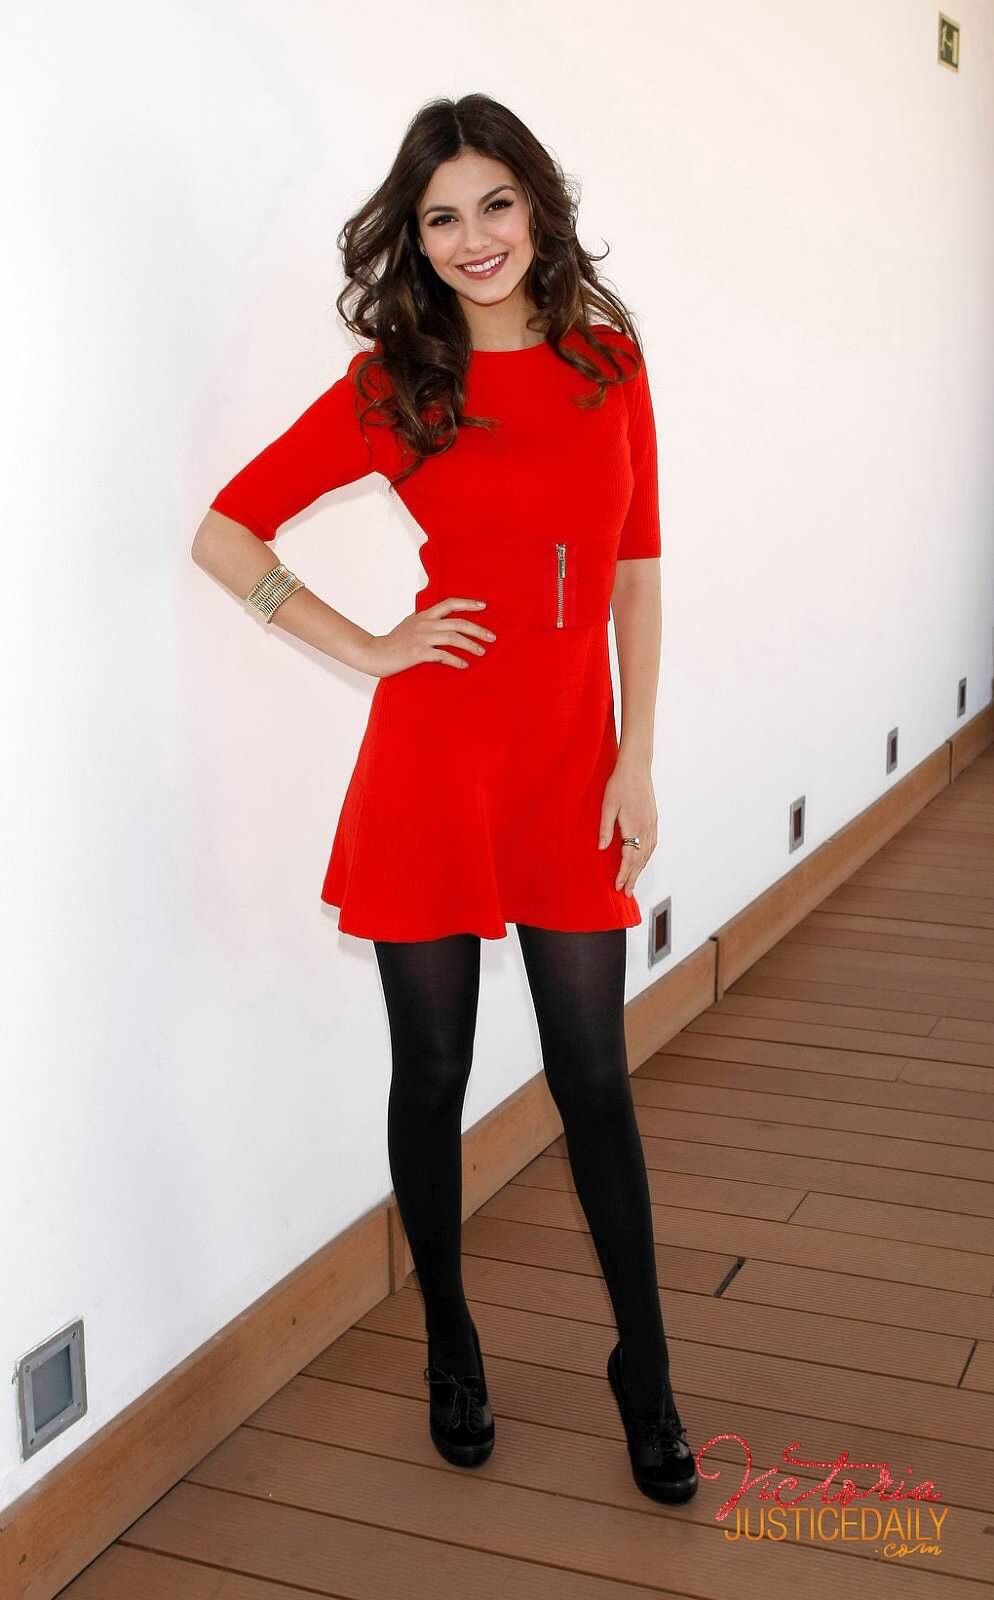 Iphone And Ipad Photo App Mobile Photo Sharing Applications Share Iphone Photos Red Dress Black Tights Fashion Women [ 1600 x 994 Pixel ]